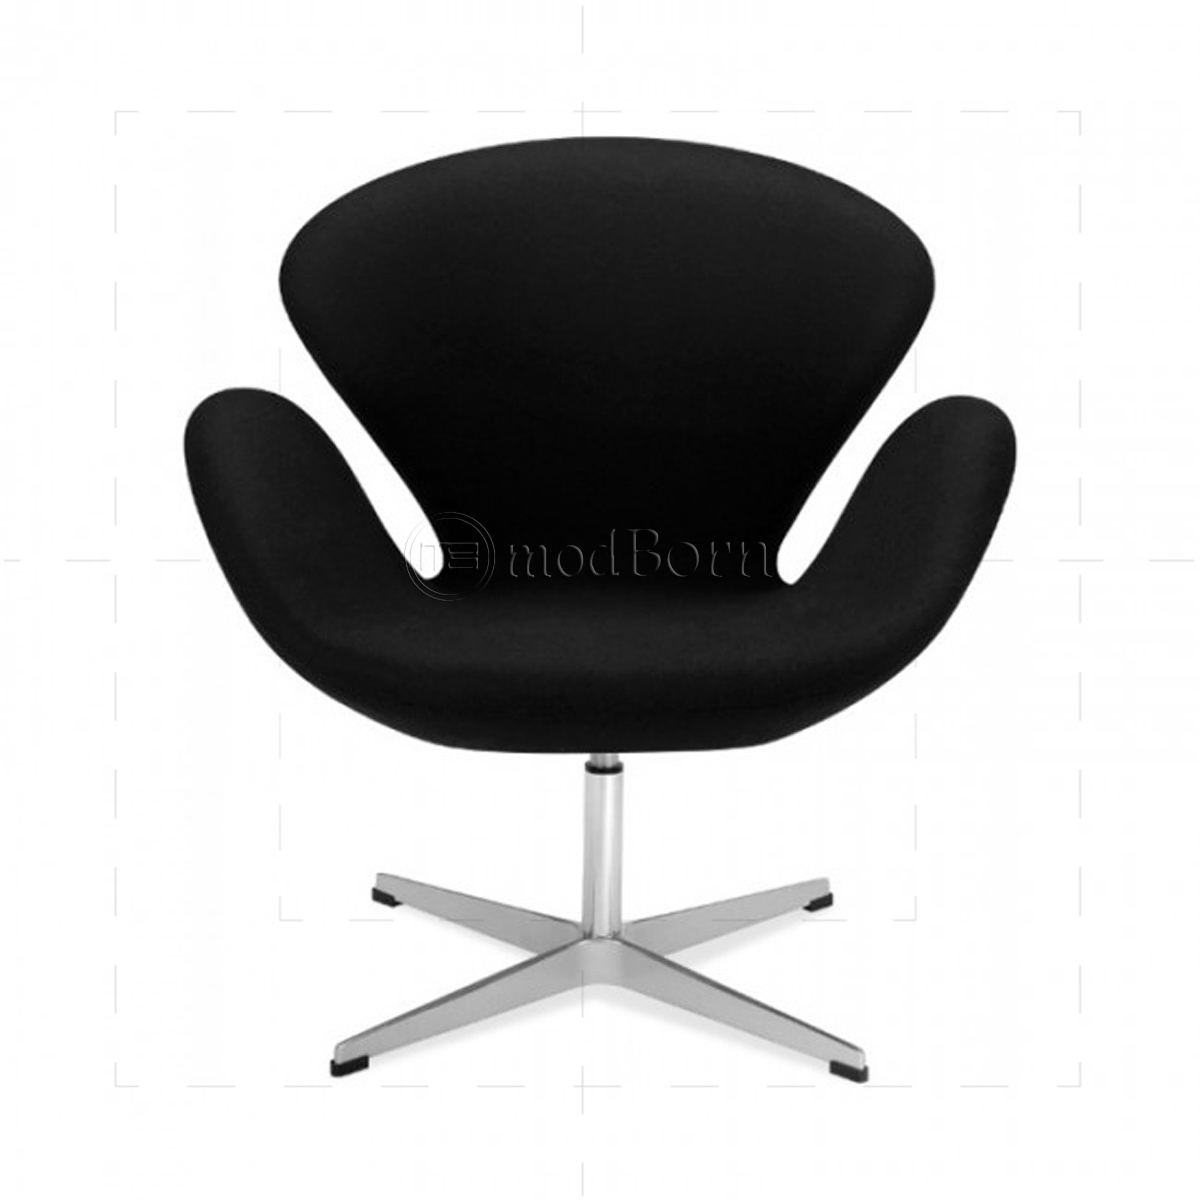 Arne jacobsen style swan chair black cashmere wool replica for Arne jacobsen stehlampe replica